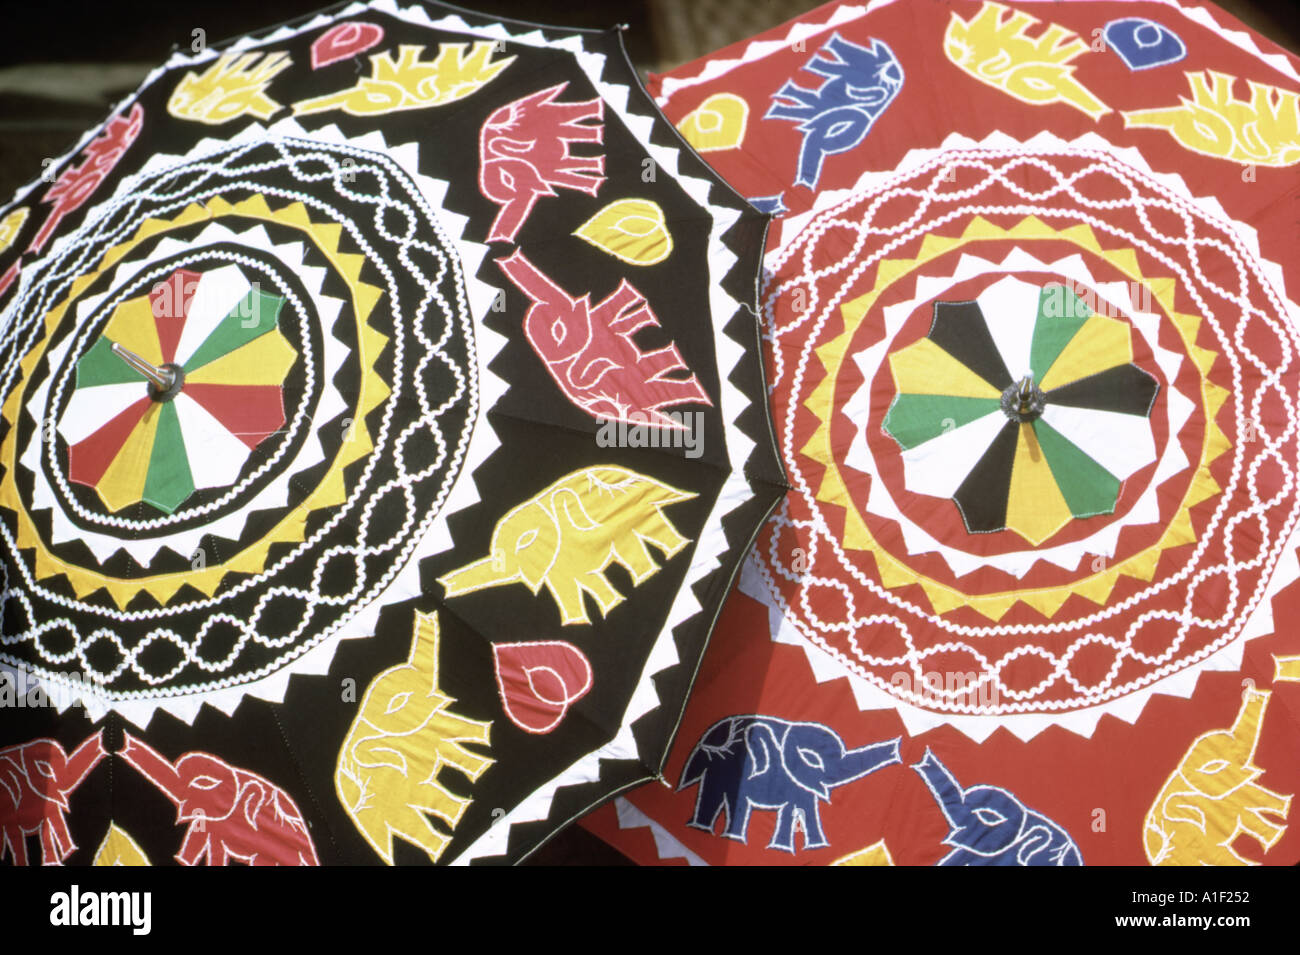 Applique Work Of Orissa High Resolution Stock Photography and Images - Alamy